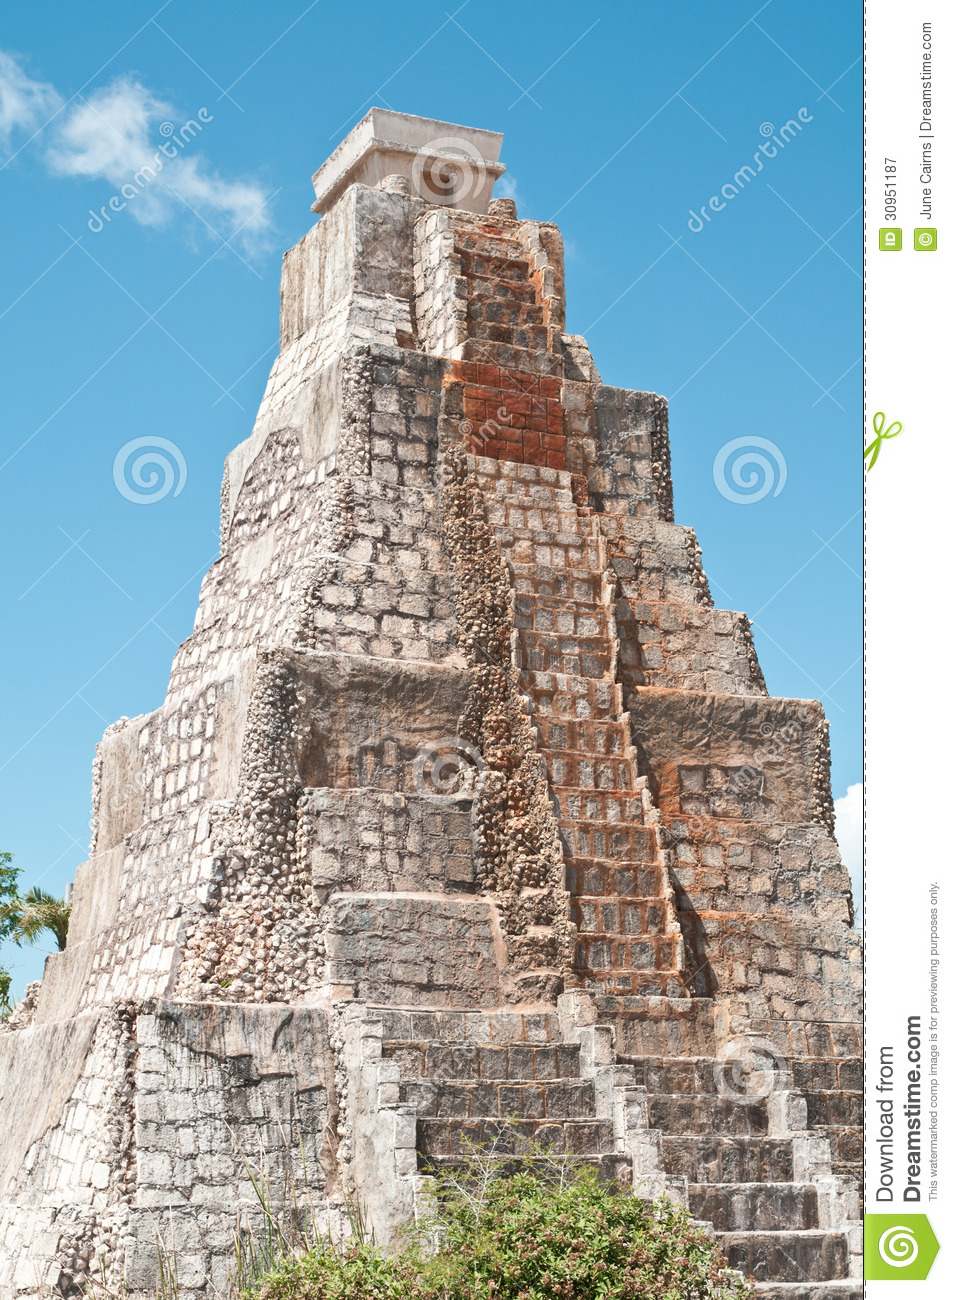 mayan architecture royalty free stock photography - image: 30951187